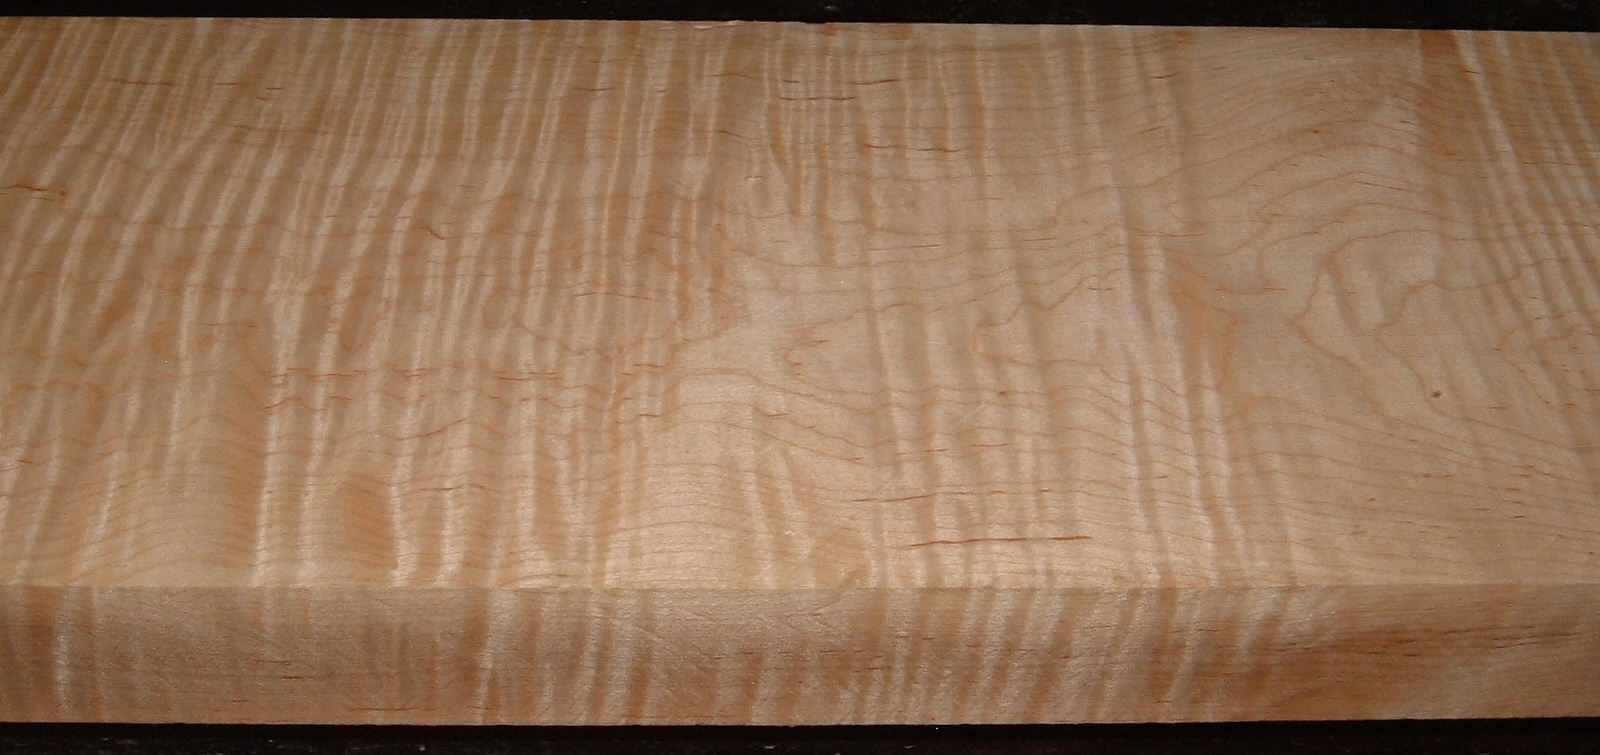 M2007-609, 1-7/8x8-3/8x46, Curly Tiger Maple, Luthier Figure